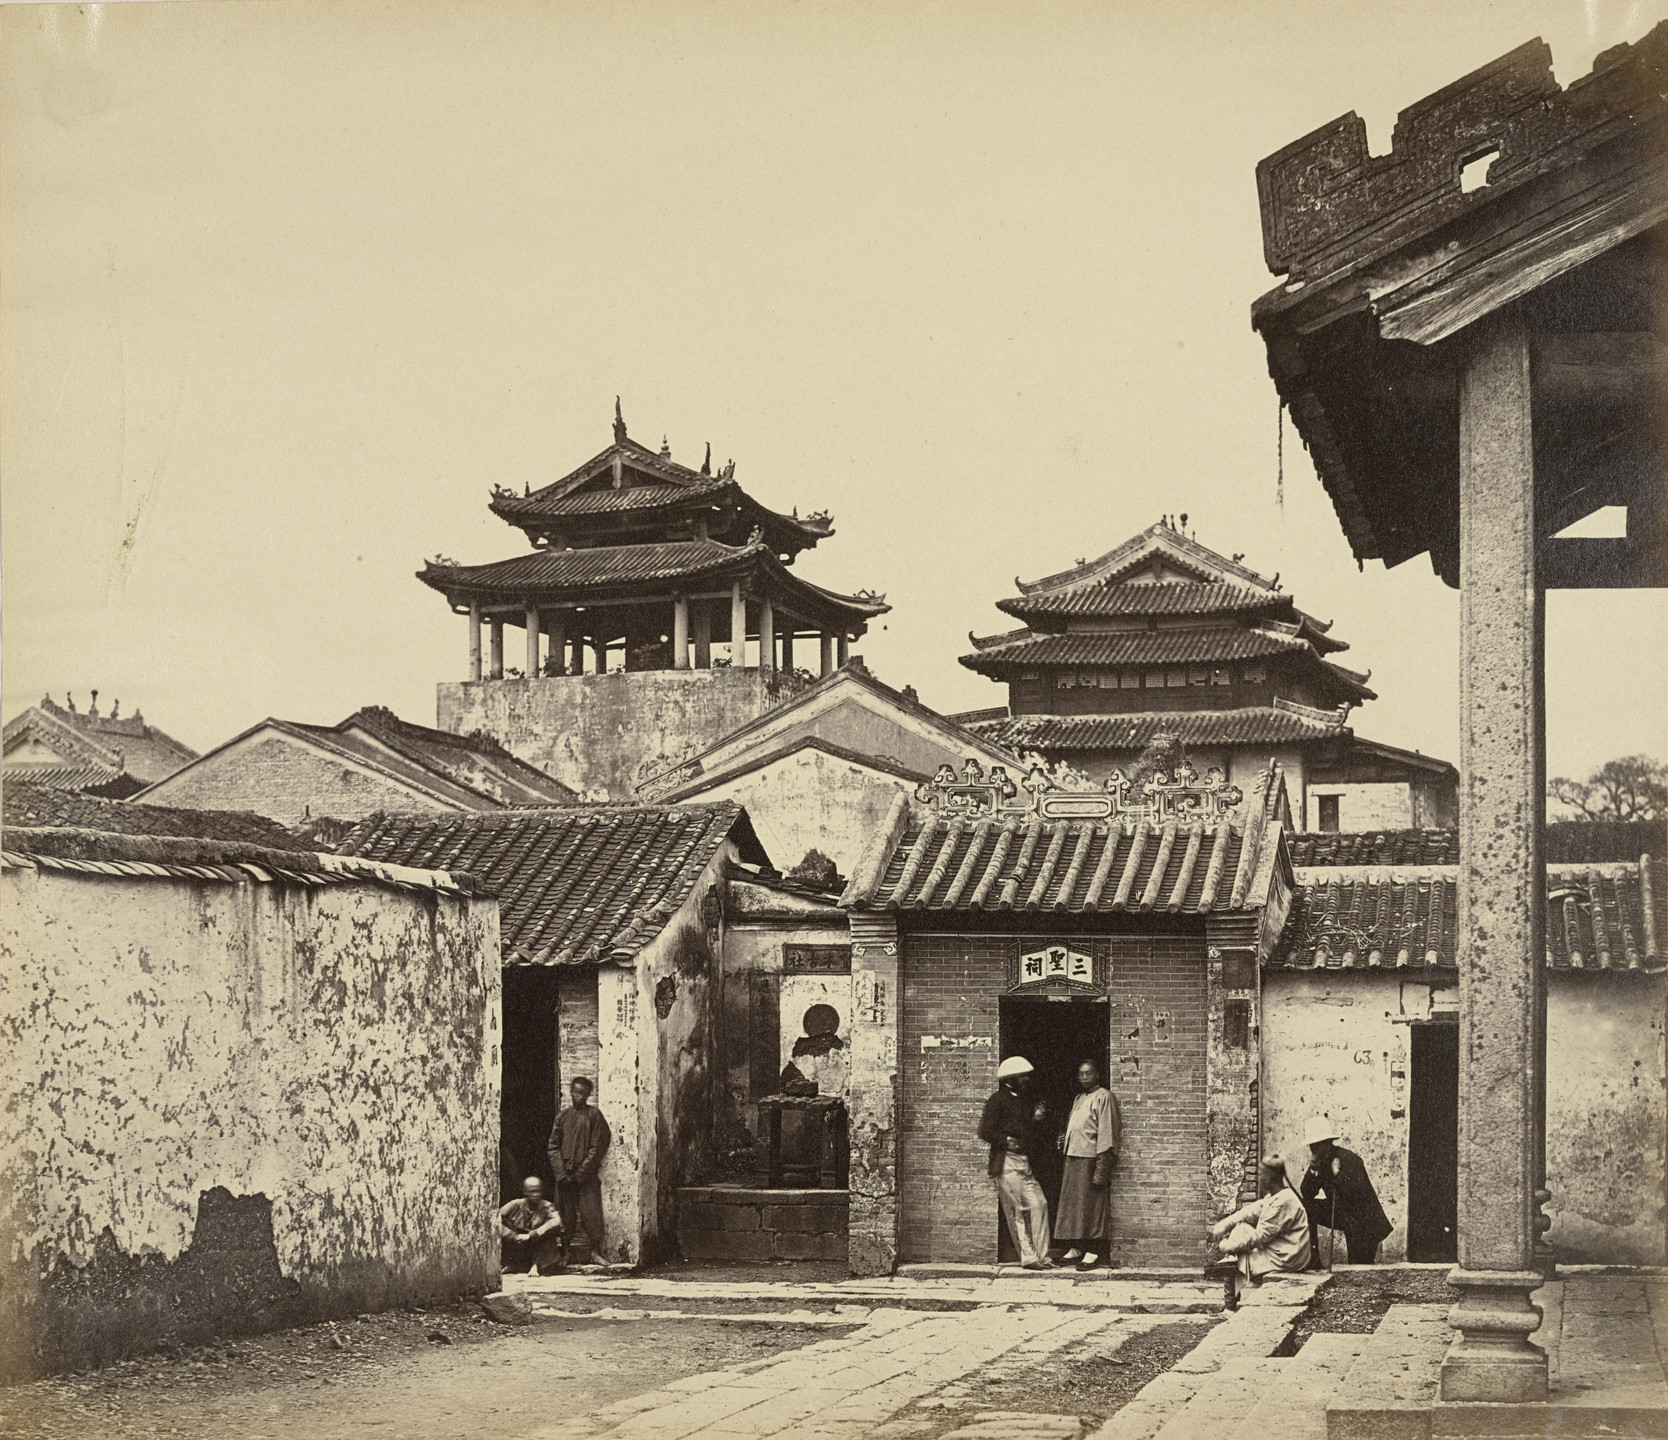 Felice Beato. Five Genii Temple from the Name Hui Tuk Kung, Canton. April 1860